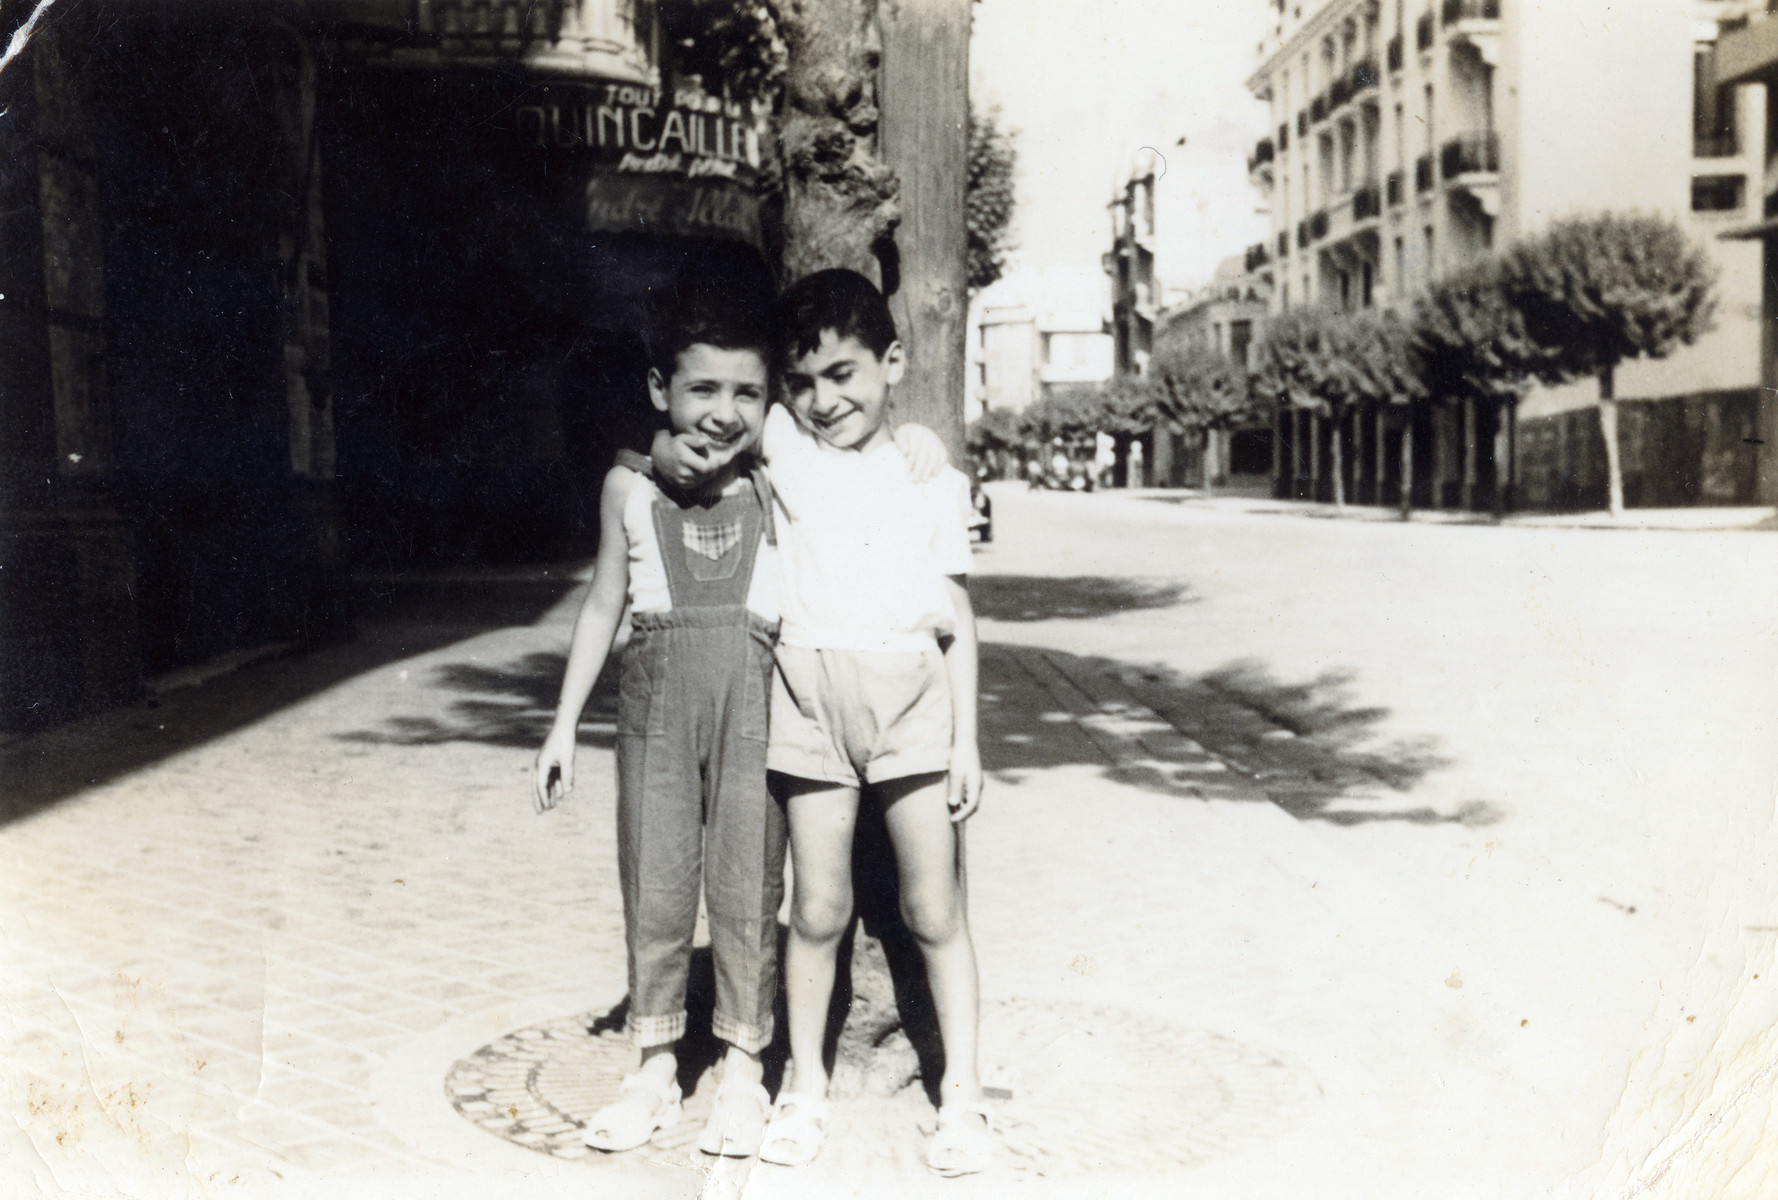 Ronnie and Ely Khayat standi outside on their street in Tunis the day before they immigrated to Israel.   Their house can be seen behind them in the background.